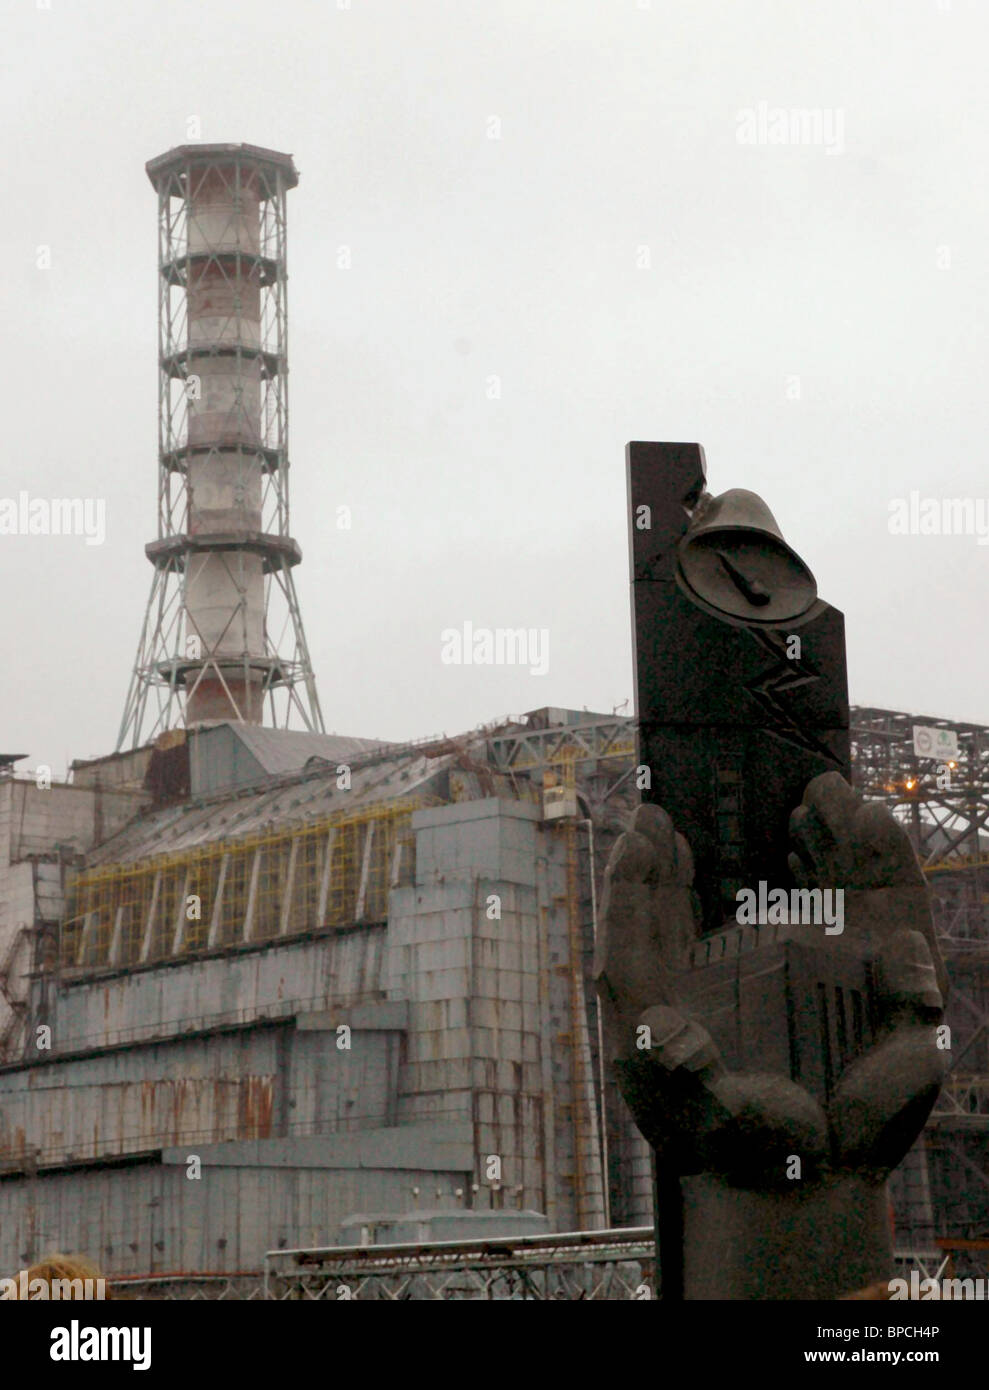 Nuclear fuel removed from Chernobyl Nuclear Power Plant reactor #1 - Stock Image